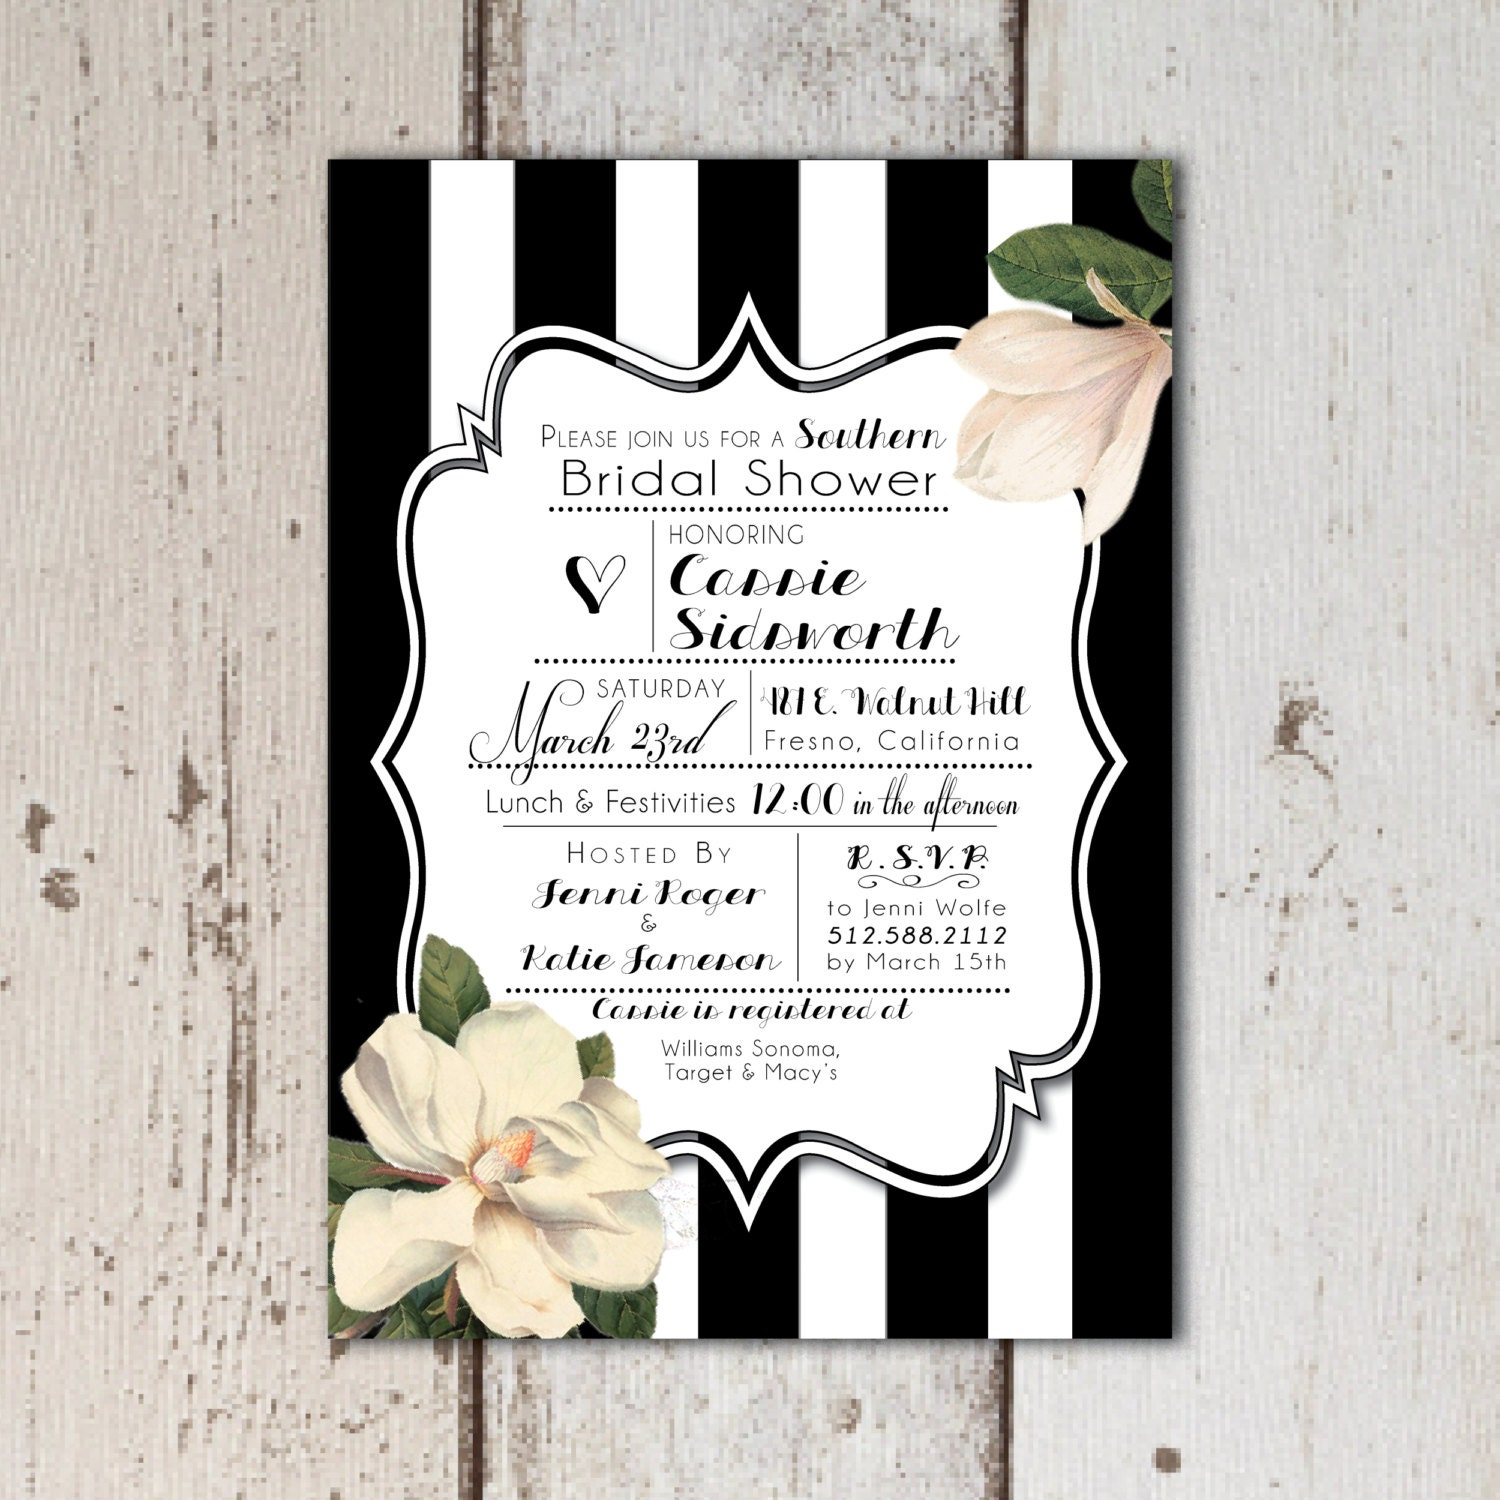 Vintage southern themed bridal shower invitations black for Themed bridal shower invitations